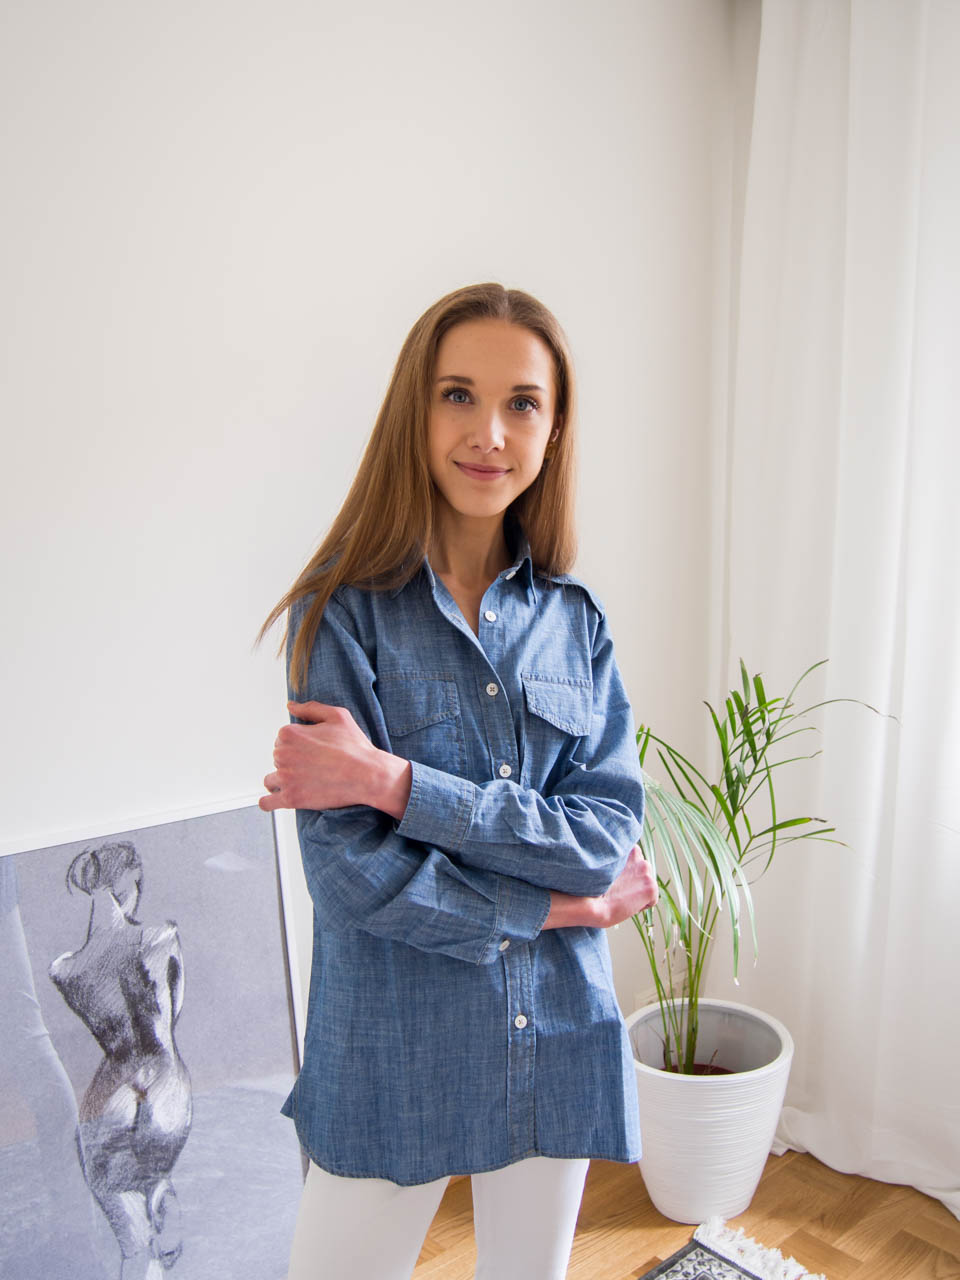 lala-brand-helsinki-denim-shirt-fashion-finland-scandinavia